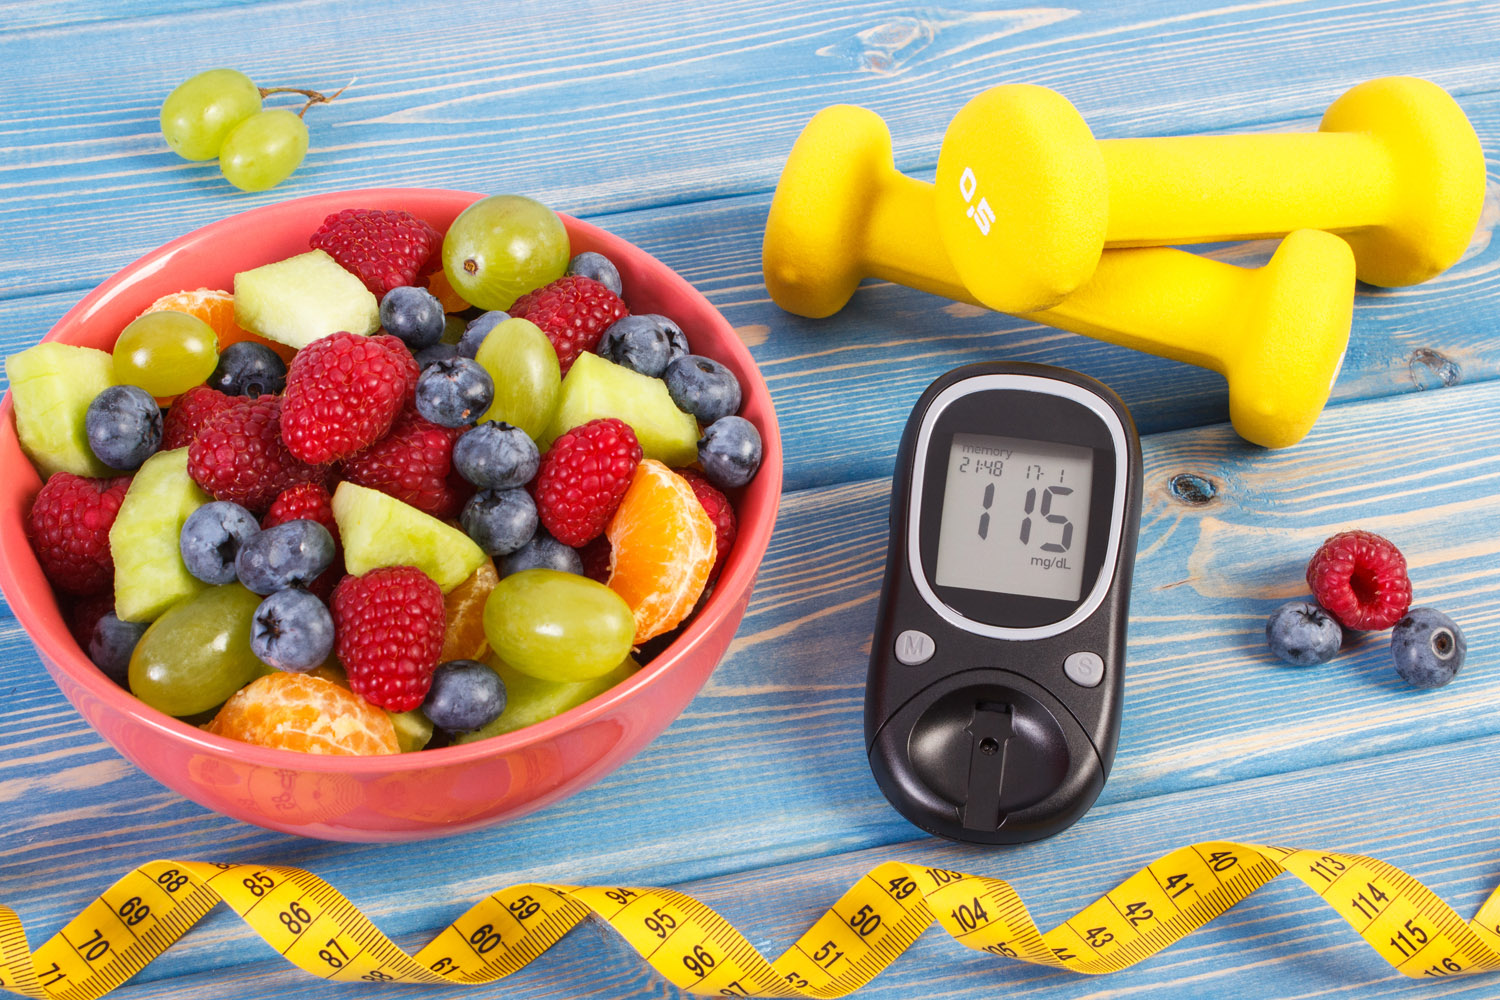 Fresh fruit salad, glucose meter with result of sugar level, tape measure and dumbbells for fitness, concept of diabetes, sport, slimming, healthy lifestyles and nutrition